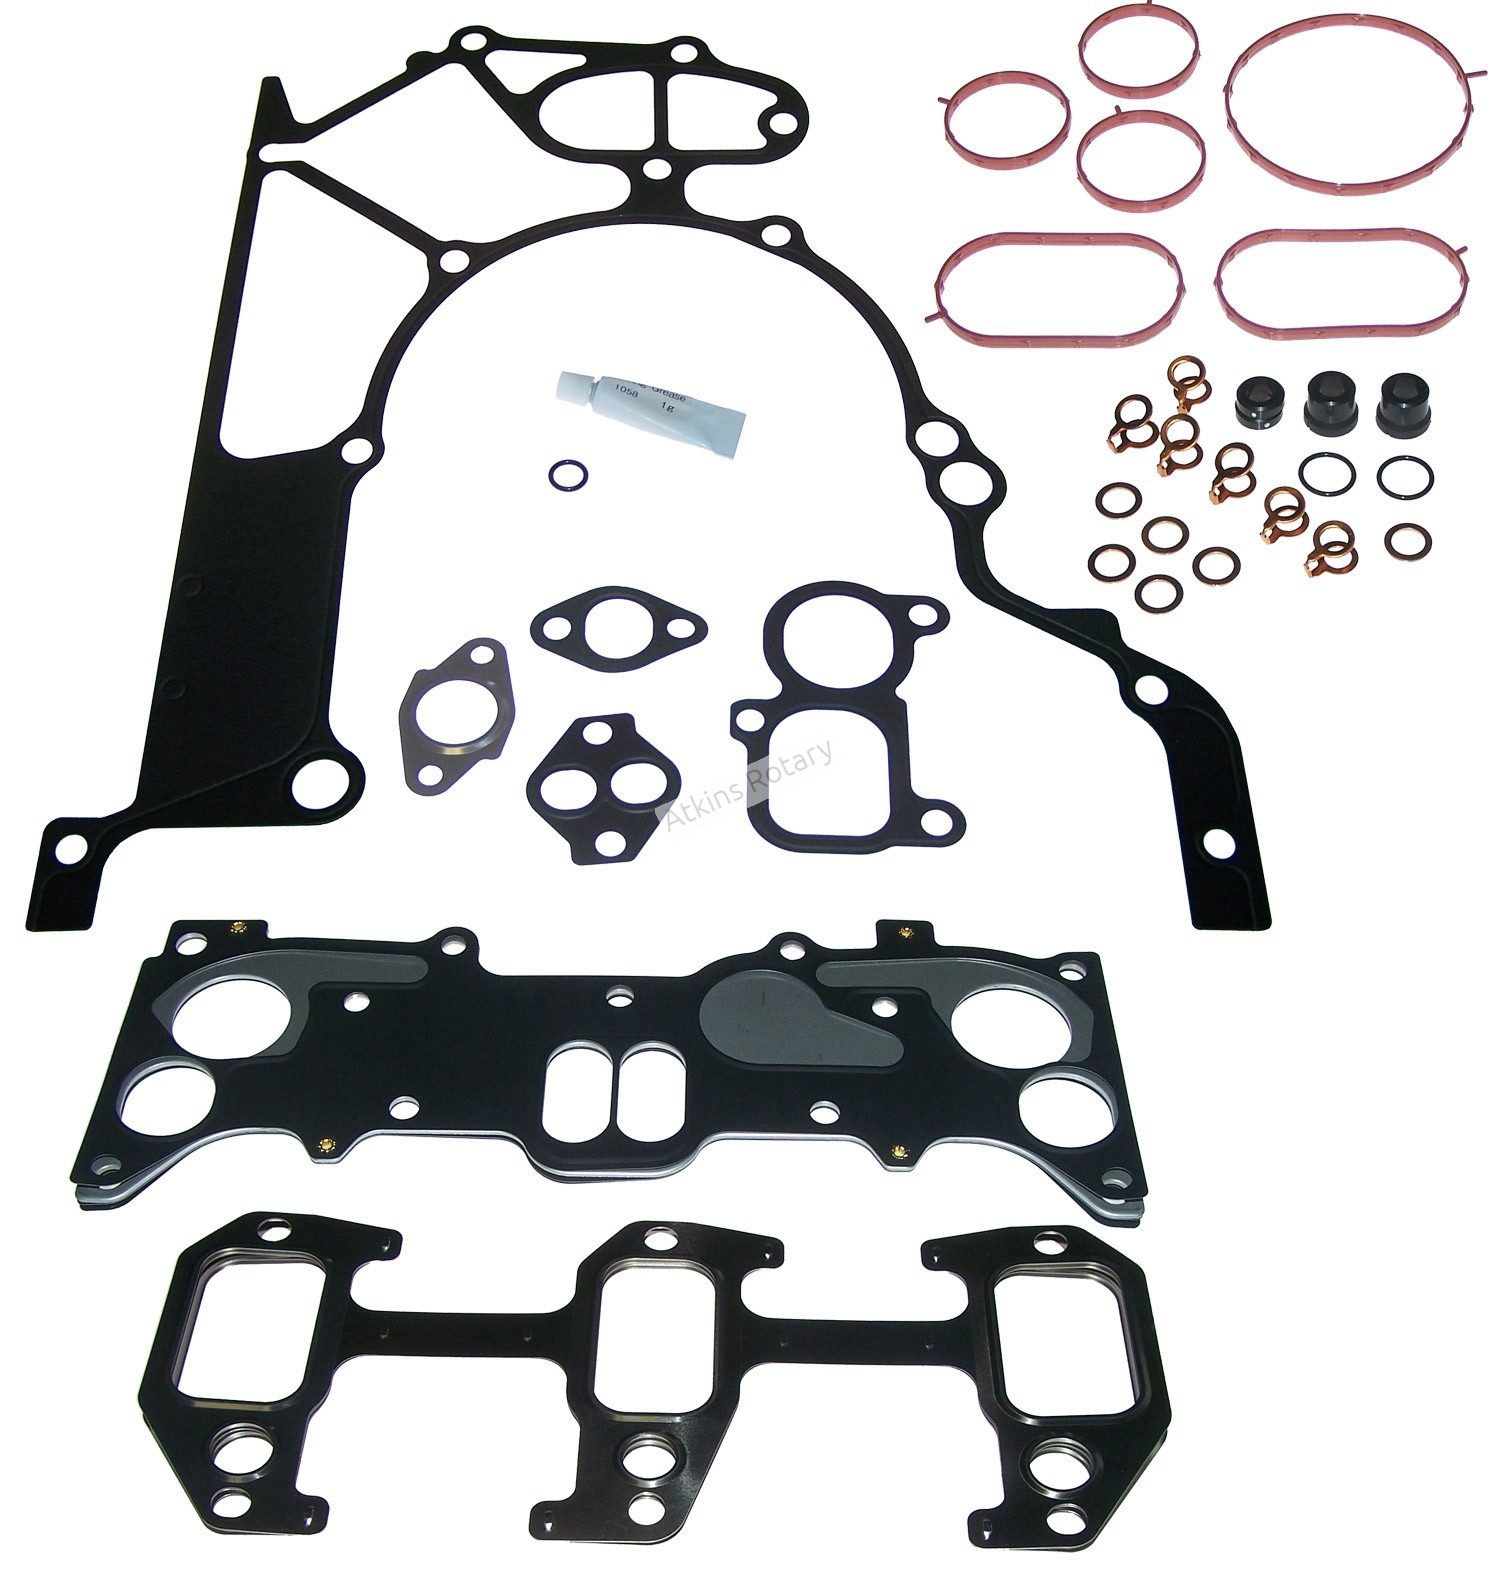 09-11 Rx8 6-Port Gasket Kit (N3Z5-10-S50A)